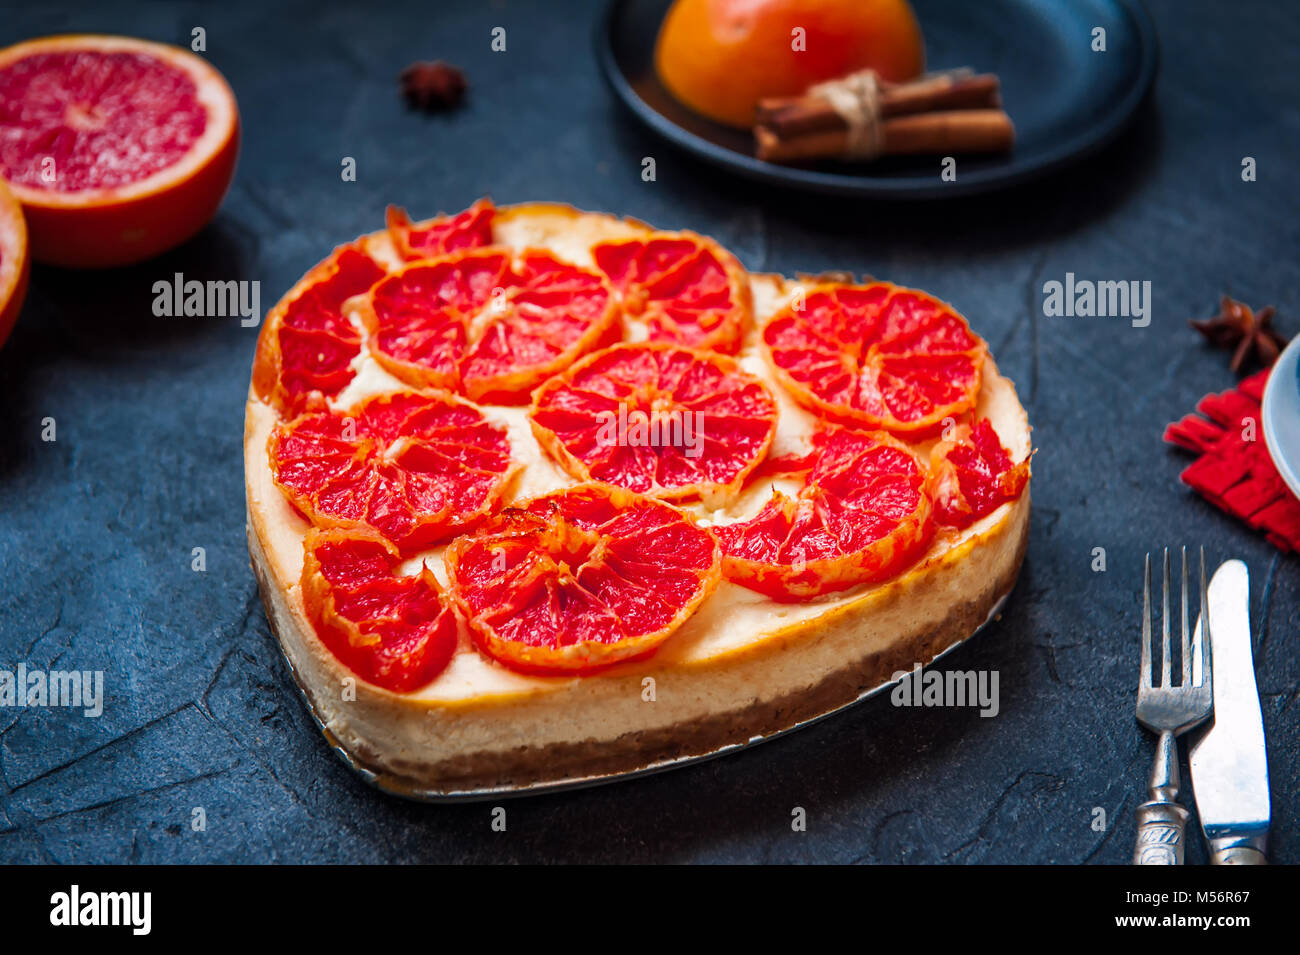 Baked cheesecake with red grapefruit slices in the shape of heart on the black stone background with ingredients - Stock Image